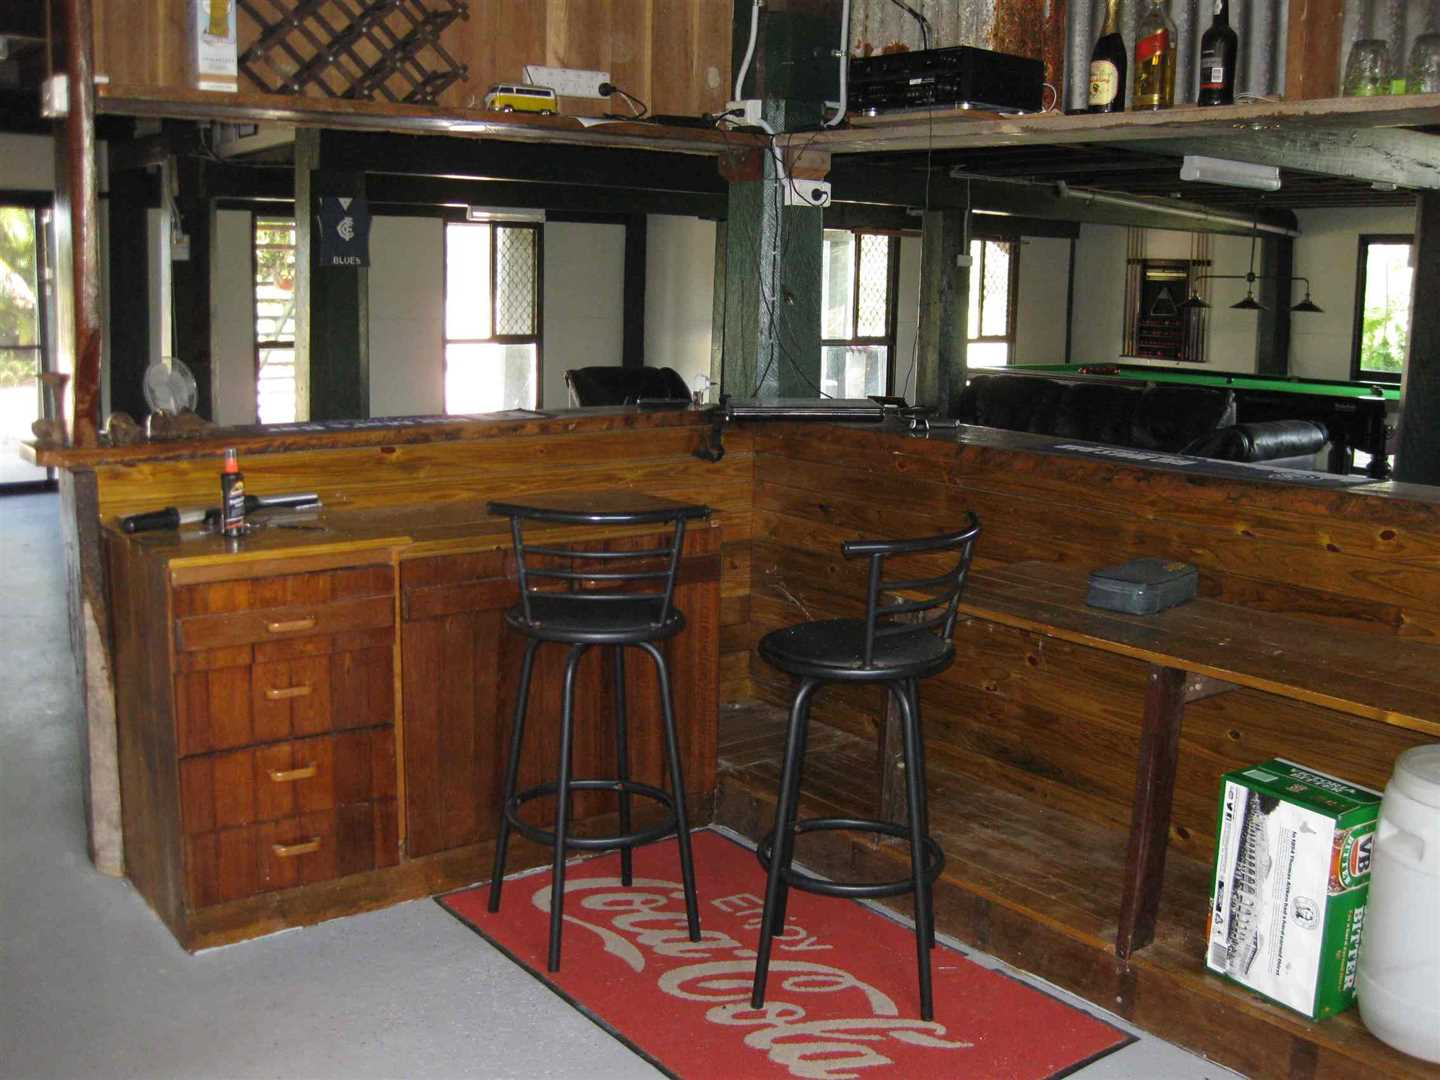 Inside view of part of home showing part of ground floor entertainment room and timber bar area